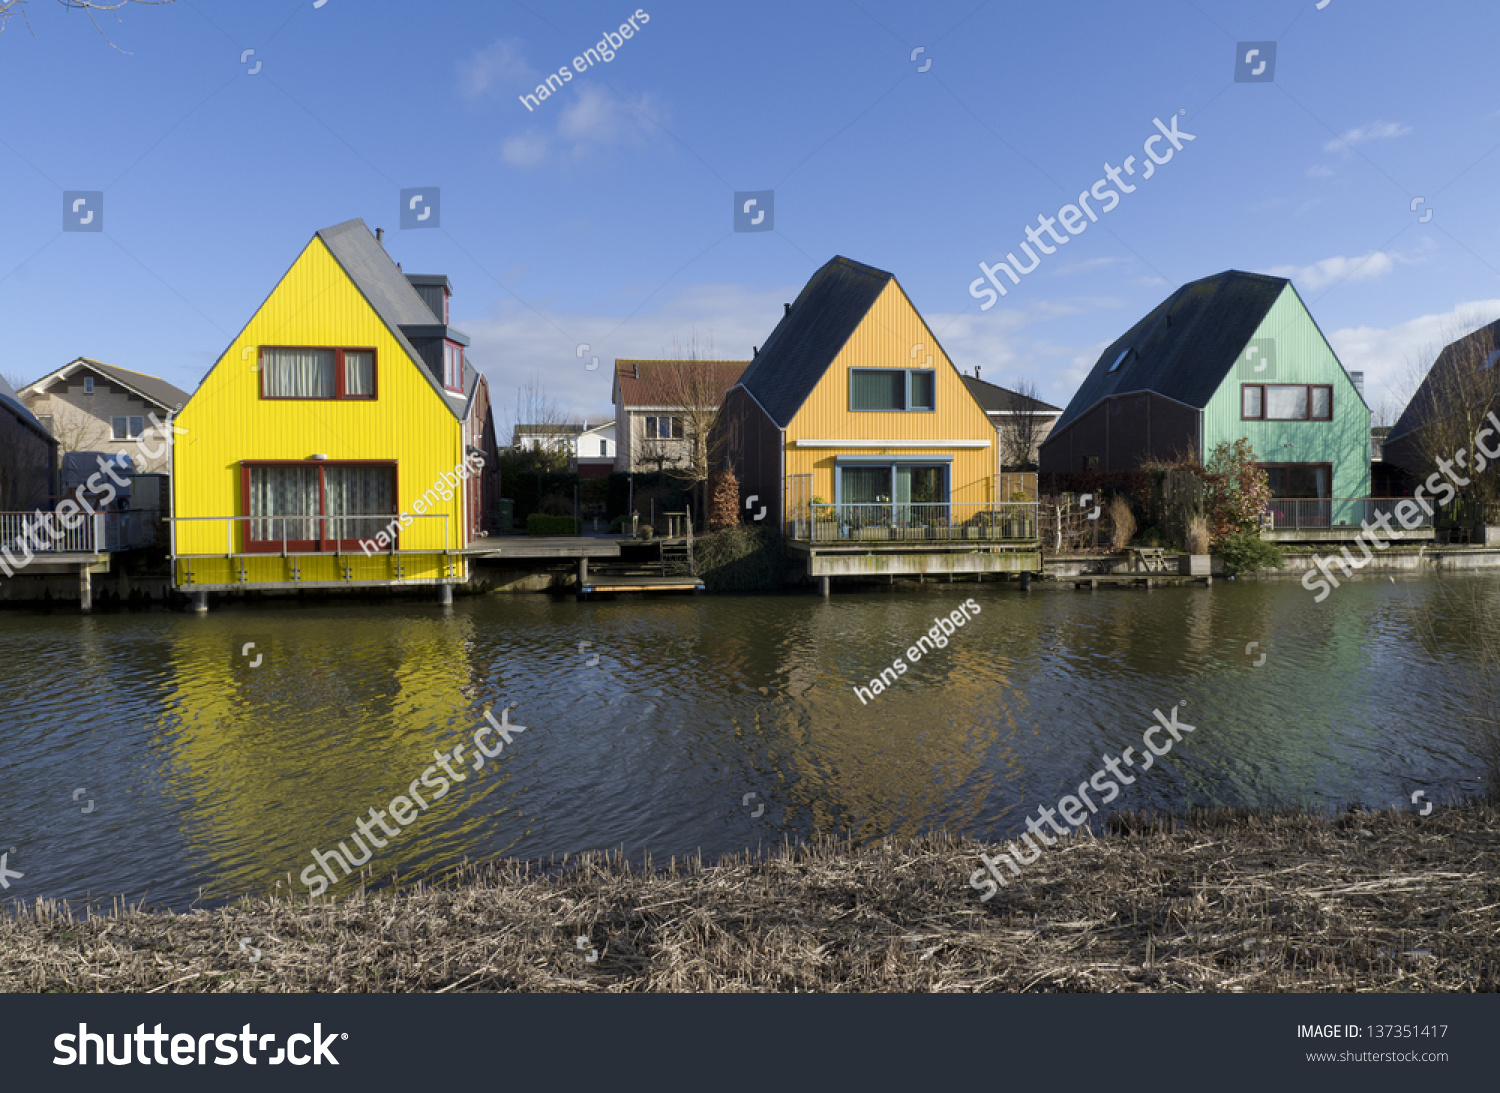 Almere, Netherlands - February 2: Colorful Houses On ... Colorful Almere